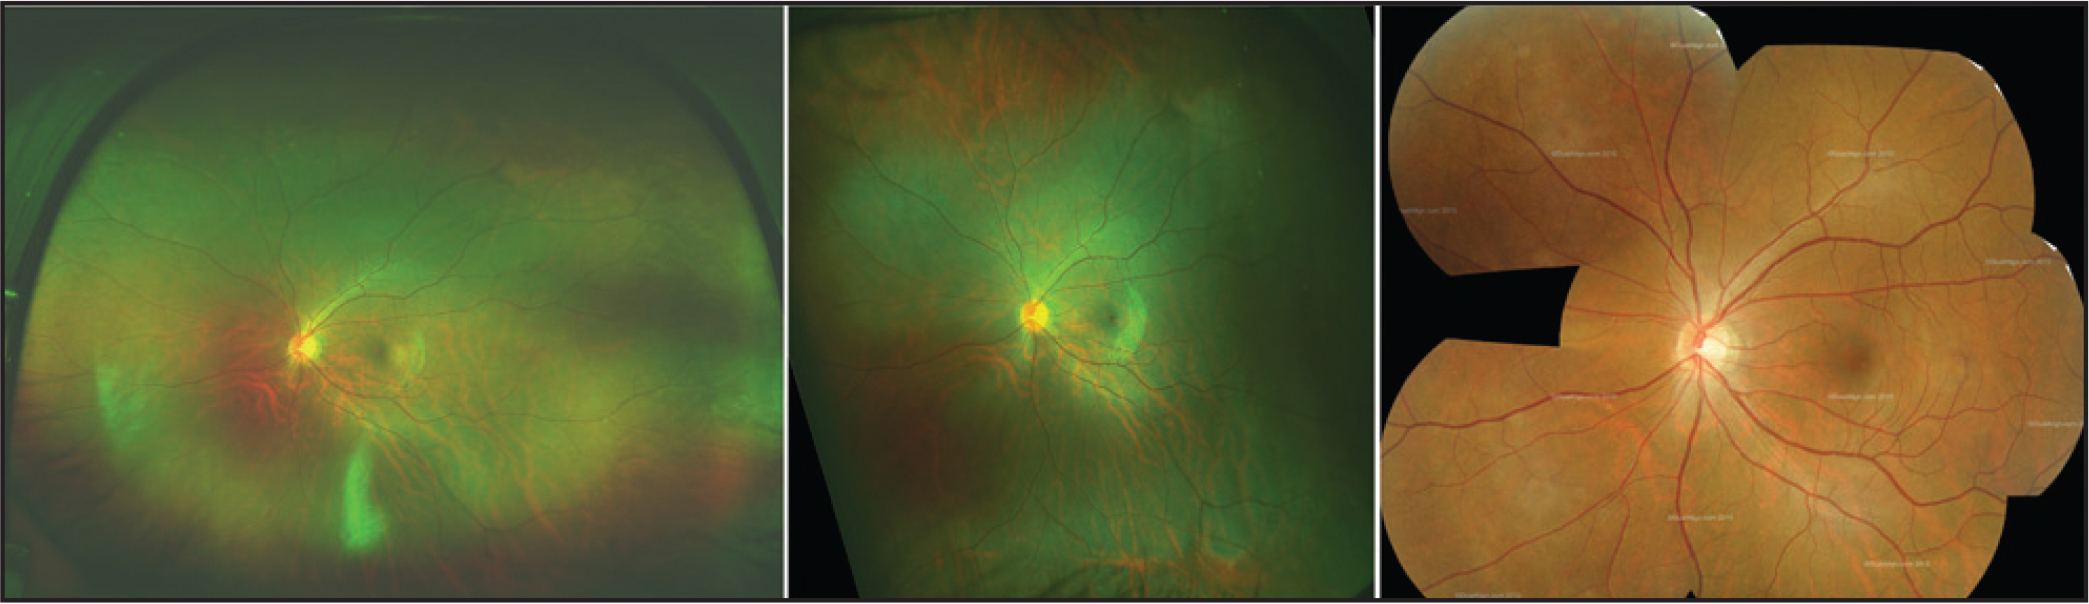 Widefield color fundus images of the same eye taken with the Optos ultra-widefield system and a seven-field Topcon retinal camera montage. Left image: central Optos ultra-widefield color fundus image taken with the head in a conventional position. Middle image: central ultra-widefield image taken with the head rotated 90° and the image is then rotated back. Right image: seven-field montage of 35° Topcon retinal camera color fundus images. The peripheral retina imaged using the Optos ultra-widefield images is wider compared to the seven-field image, as one would expect. Comparing the two Optos ultra-widefield images, the right image has a clear and wider view of the nasal and temporal retina but limited vertically. This is the opposite in the middle image, with a clear and wider view of the superior and inferior retina but limited horizontally.